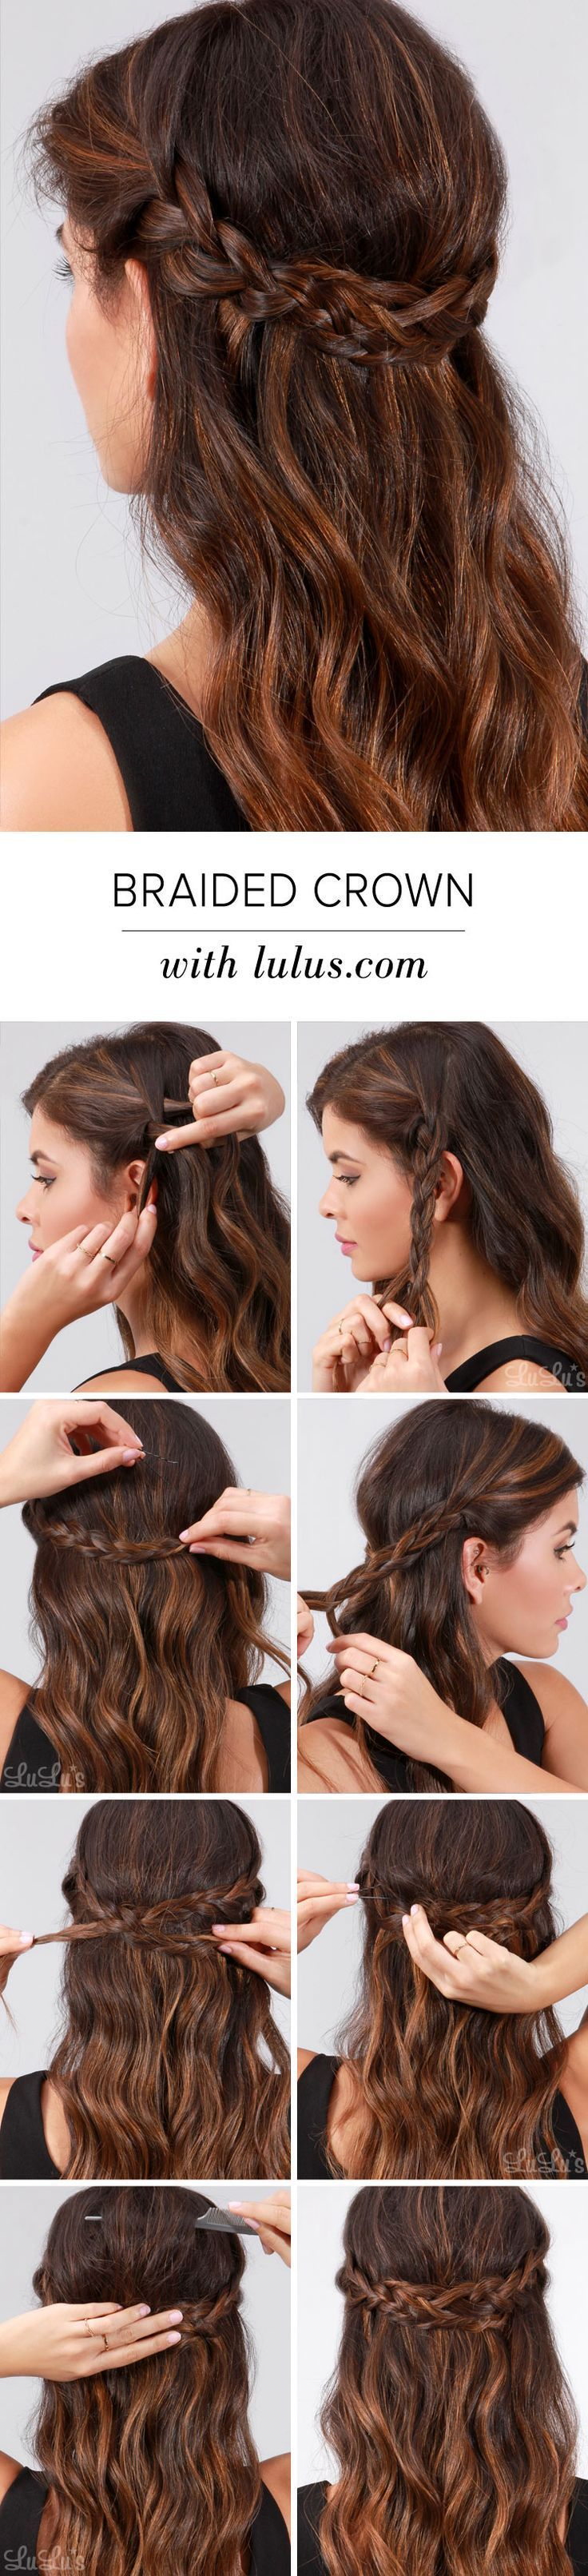 The 25+ best Braided hairstyles ideas on Pinterest | Plaits ...